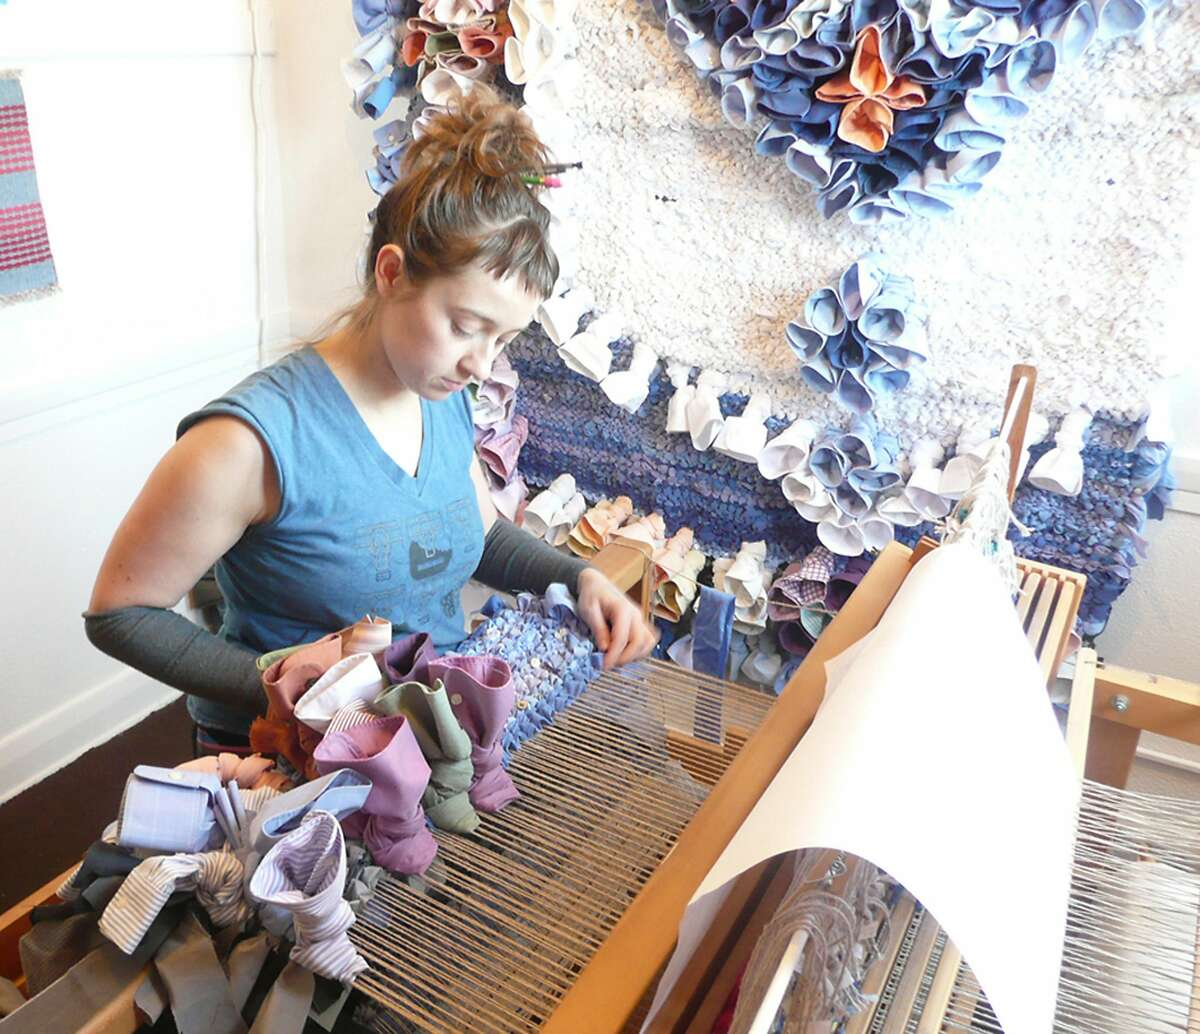 Angie Wilson at work. She's one of the 30 artists represented in